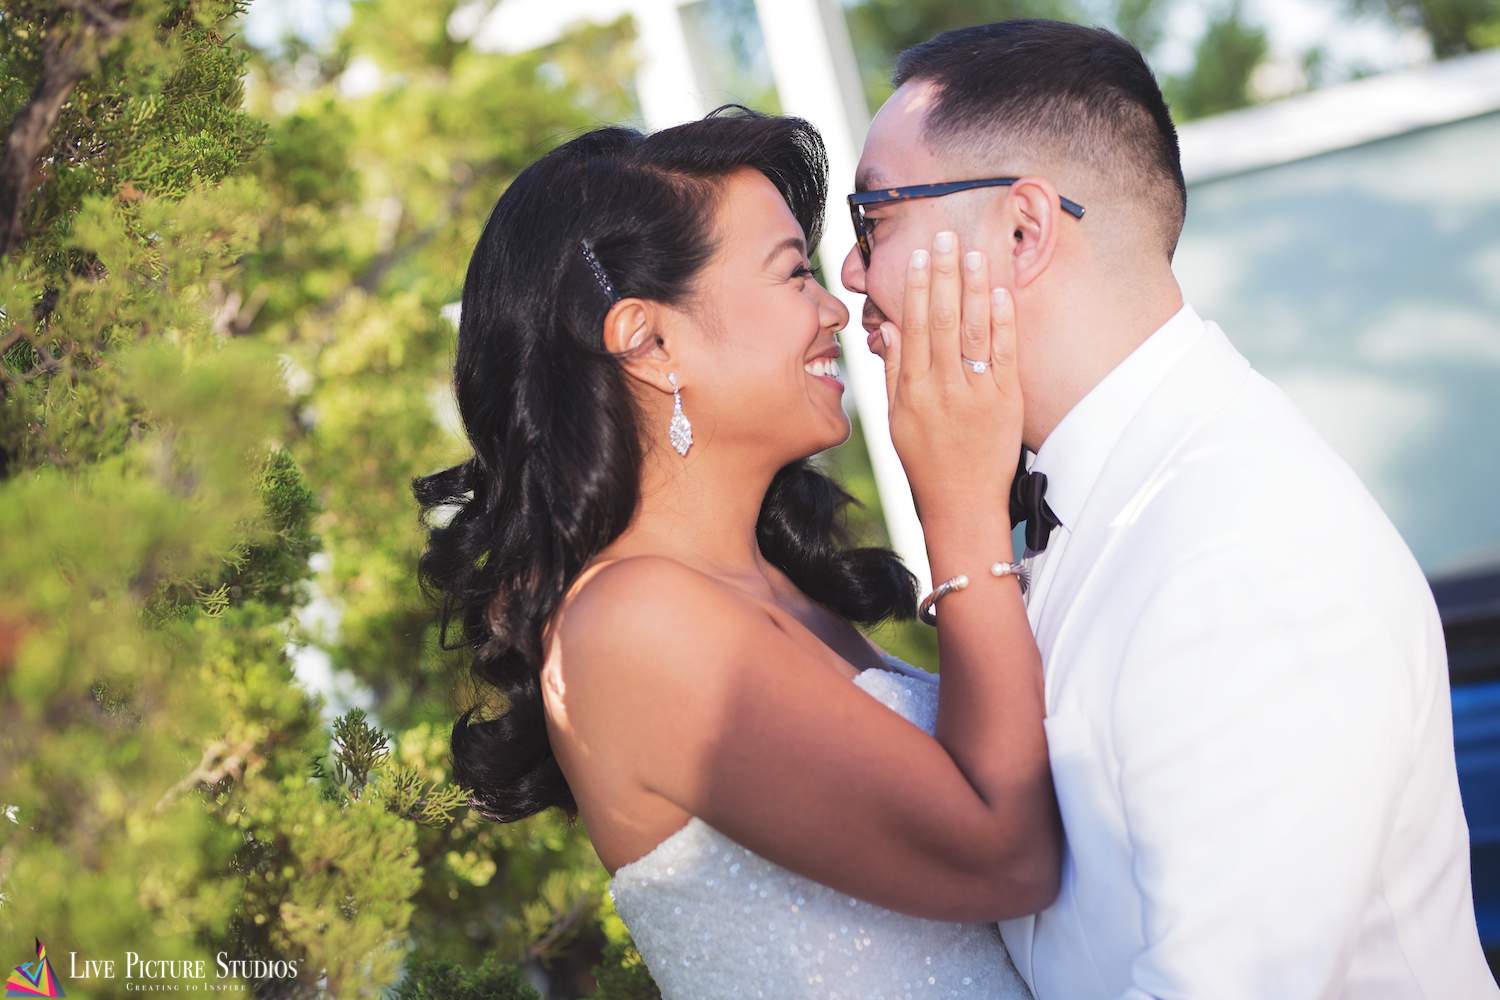 3 Tips for Staying In the Moment from NJ Wedding Photography Pros